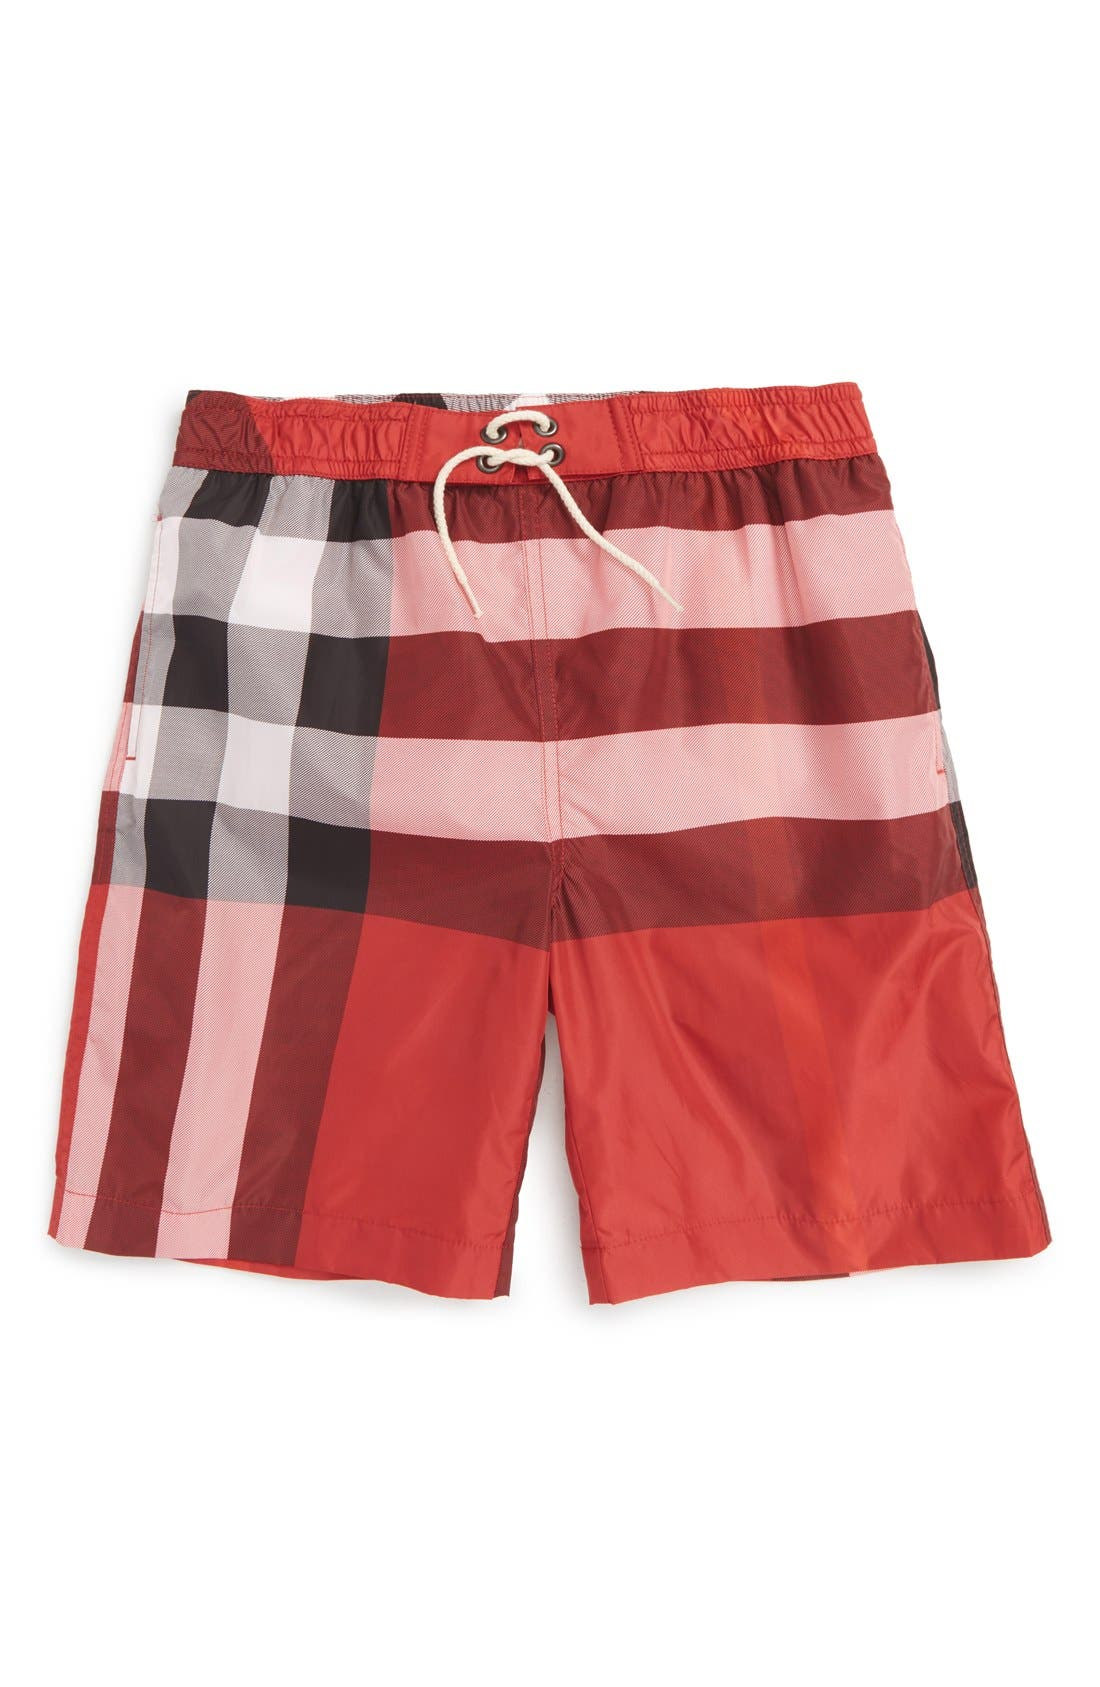 'Mini Jeffries' Swim Trunks,                         Main,                         color, Parade Red